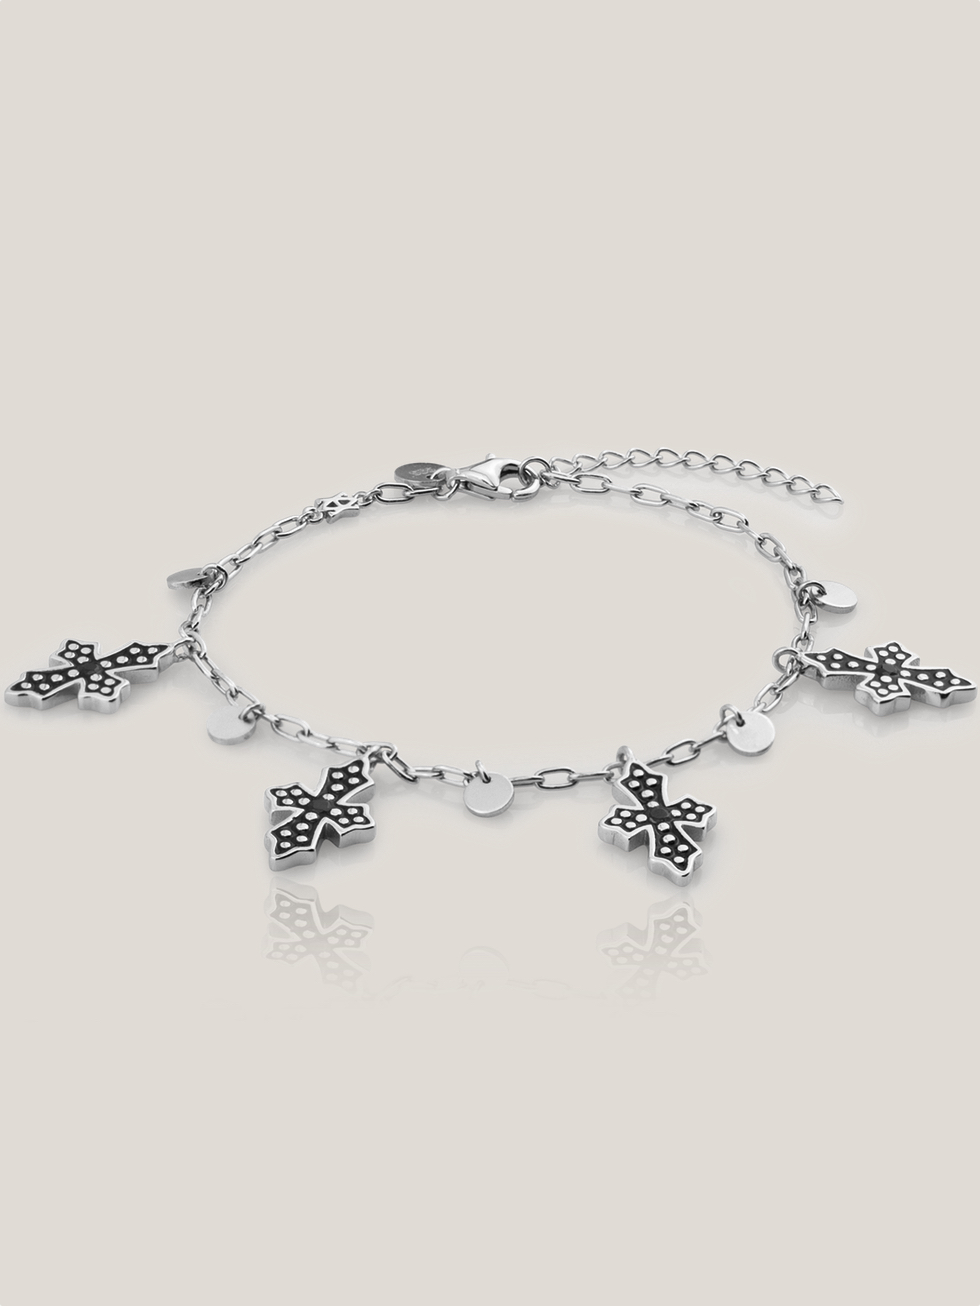 Bracelet black cross  silver2